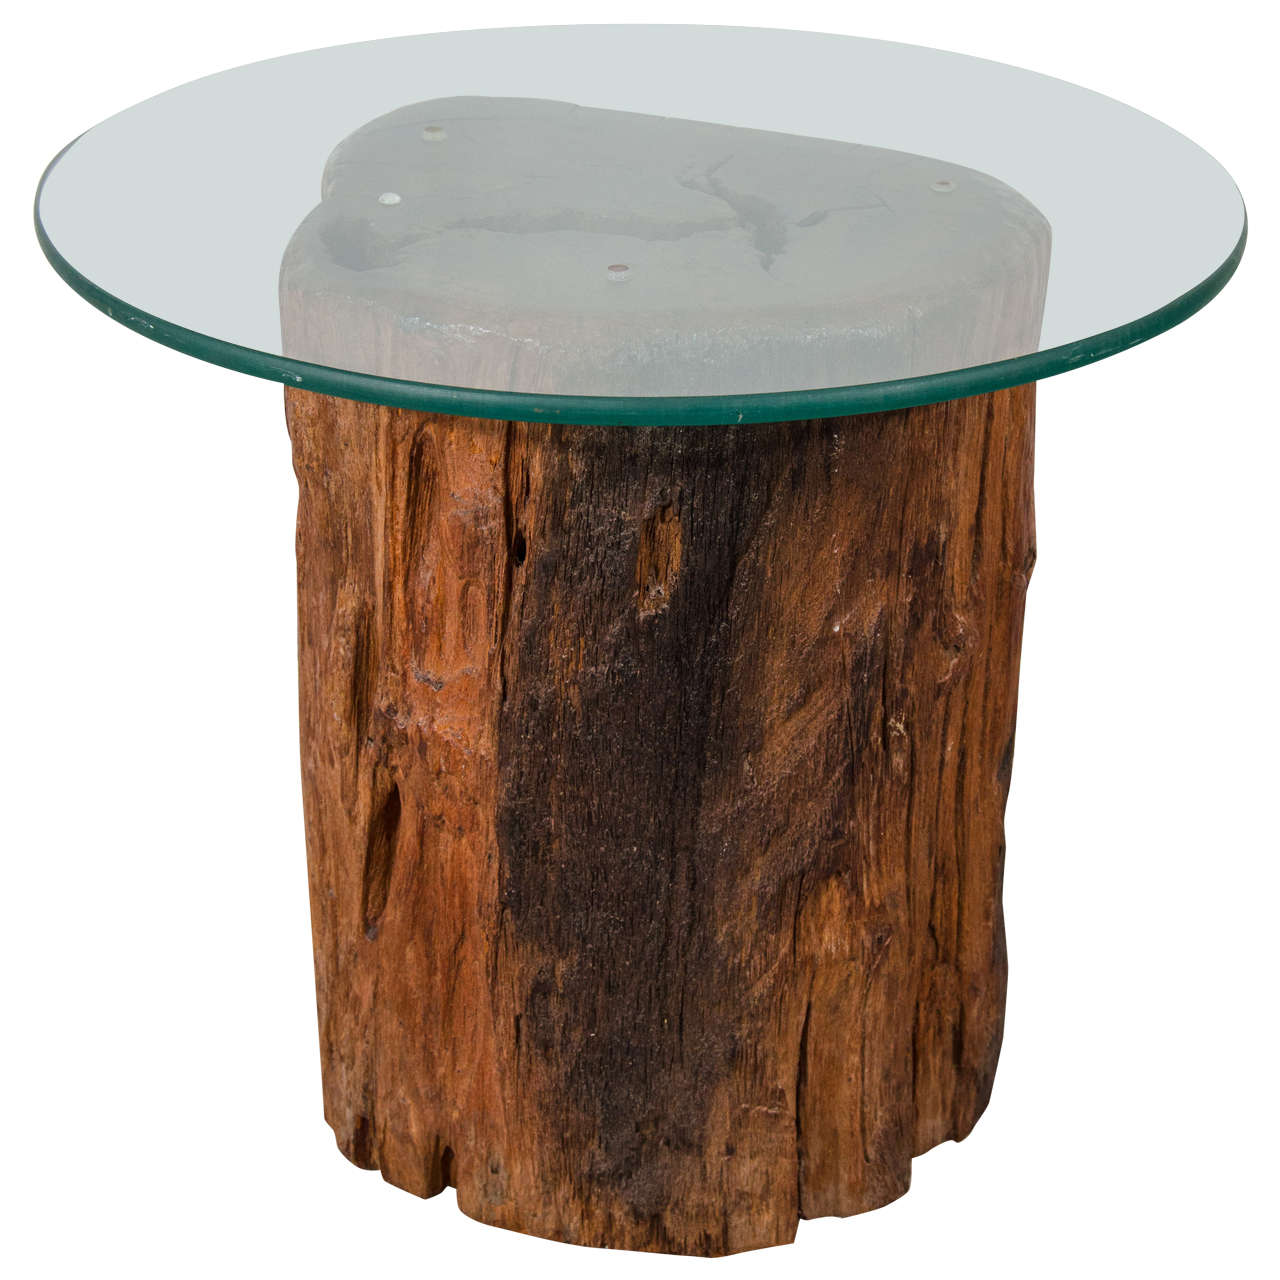 Bon Antique Petrified Tree Trunk Side Table With Glass Top For Sale